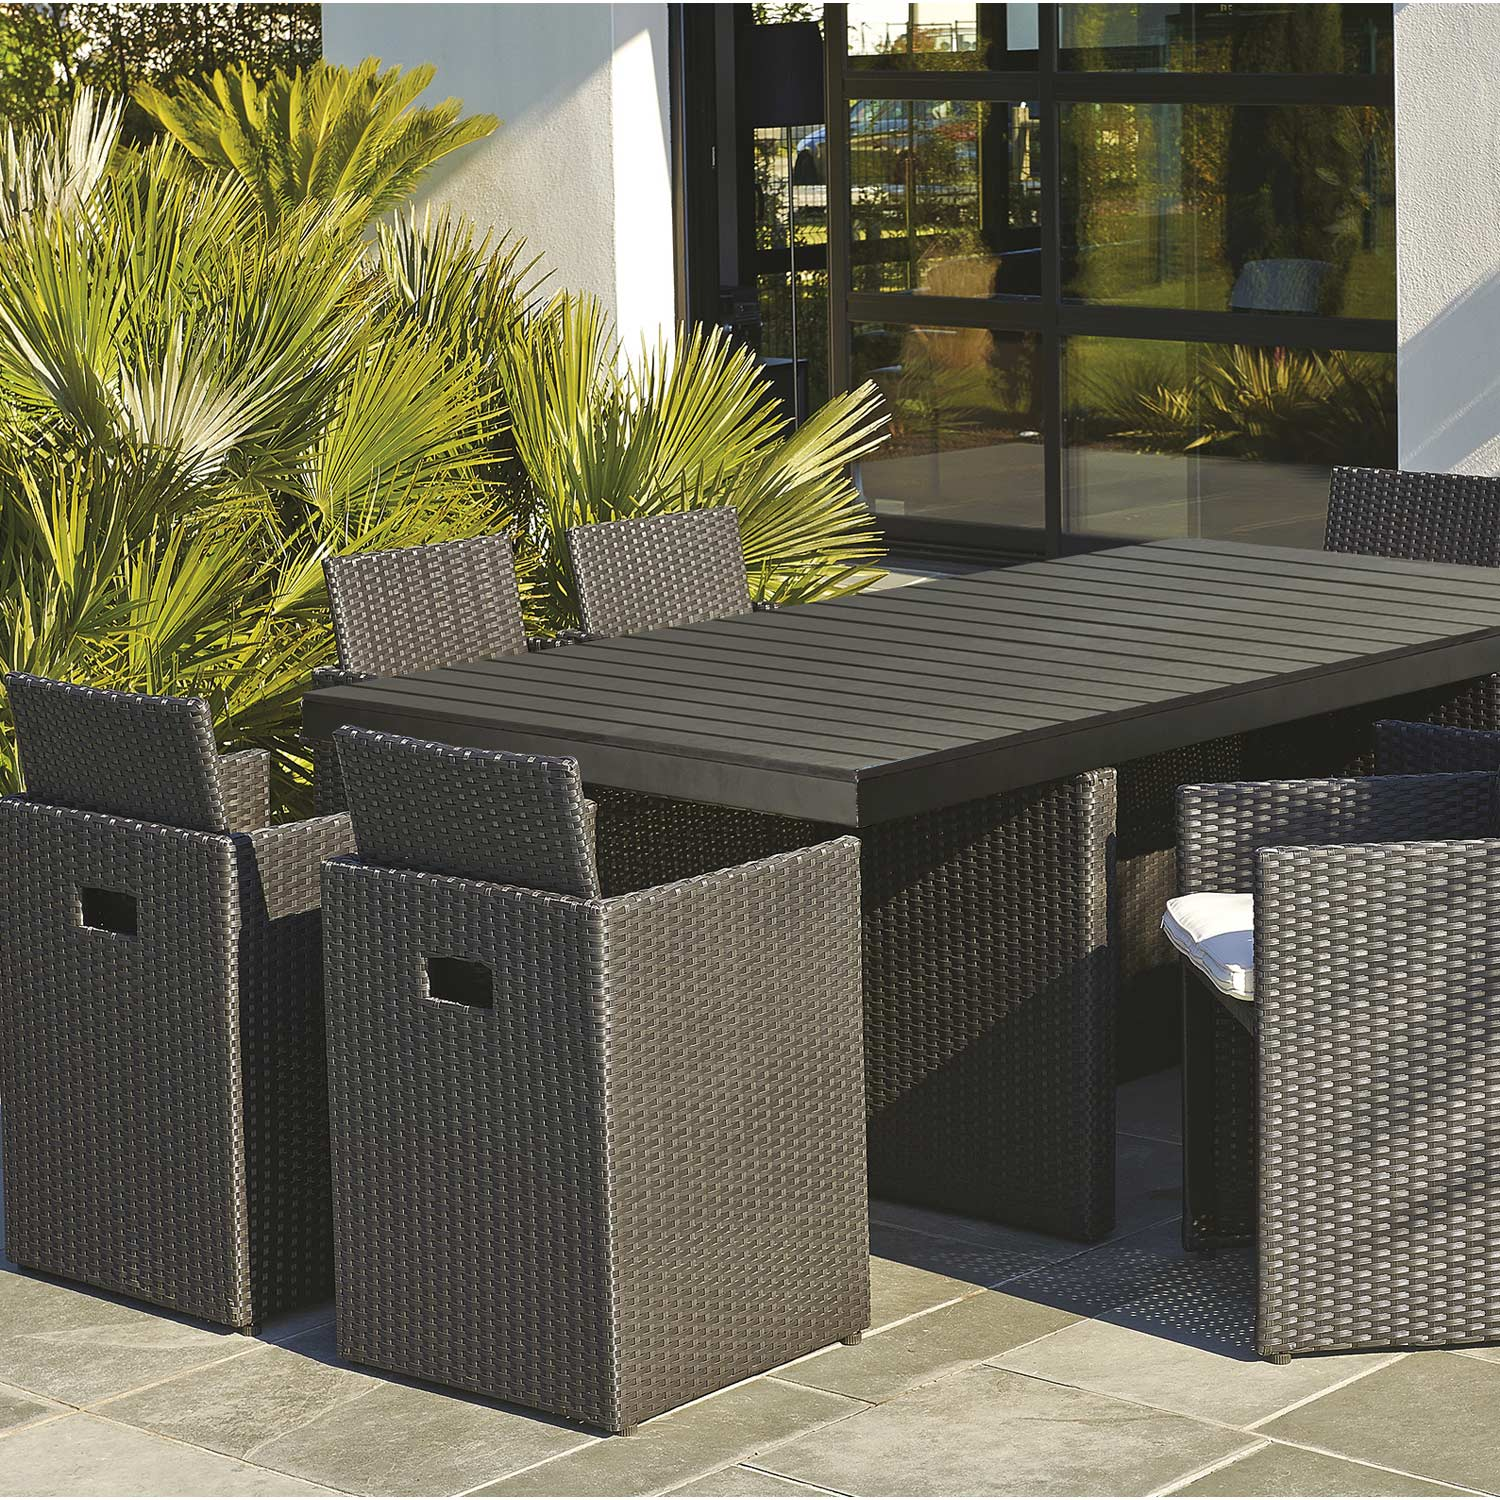 Salon de jardin encastrable r sine tress e noir 1 table for Salon jardin en resine